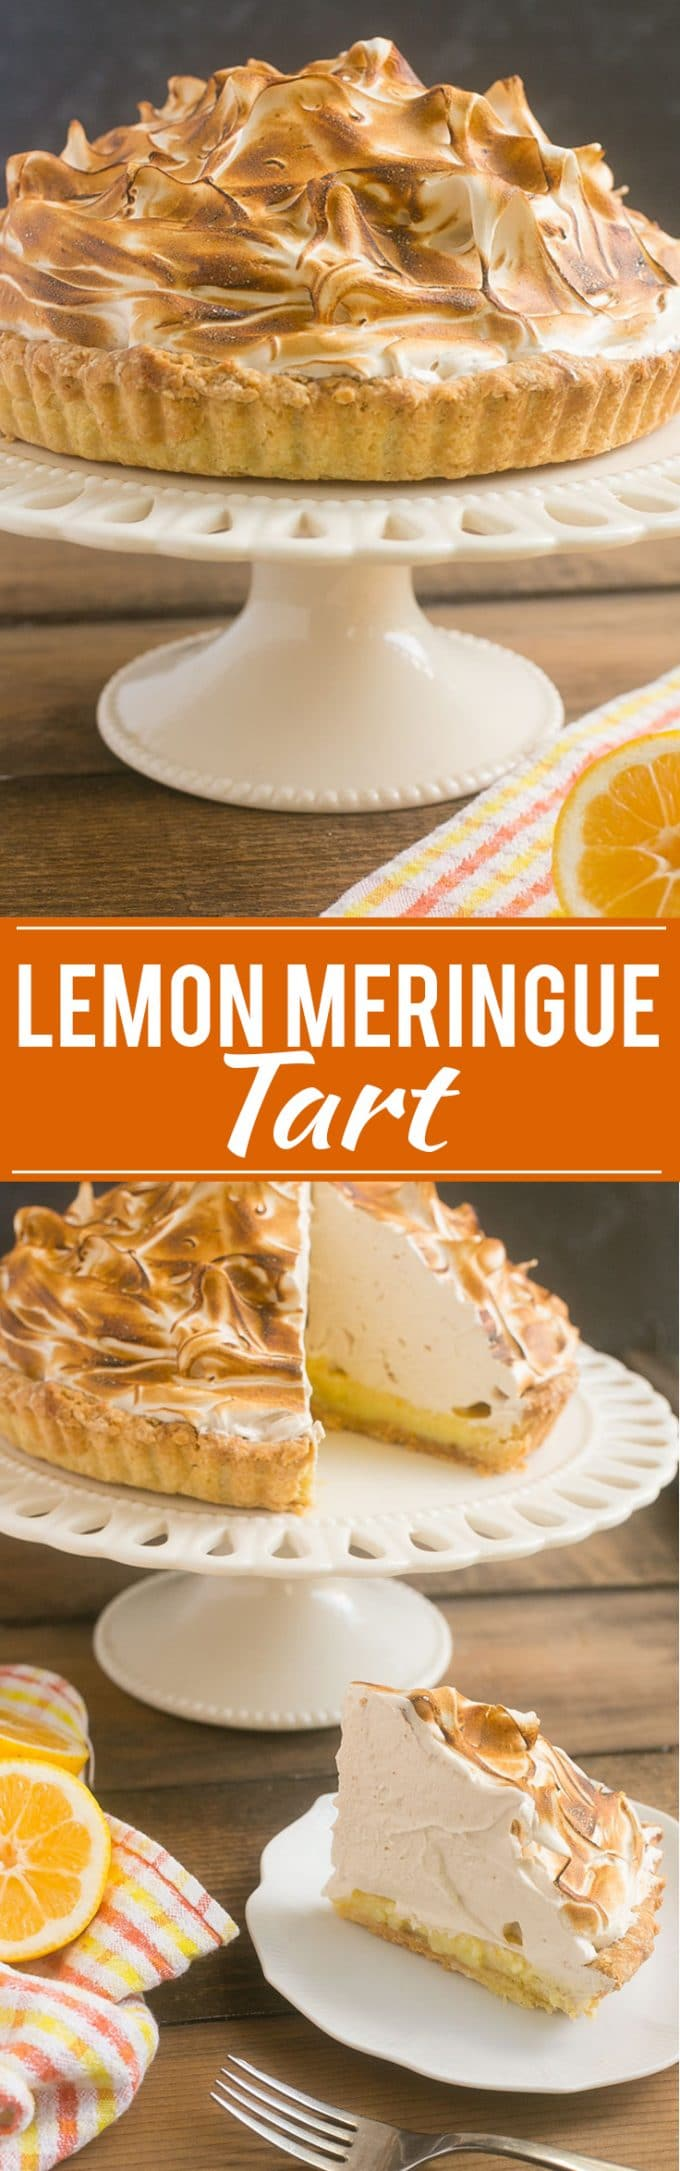 This lemon meringue tart is topped with a pile of toasted brown sugar meringue, it's a show stopping dessert that's perfect for a special occasion.